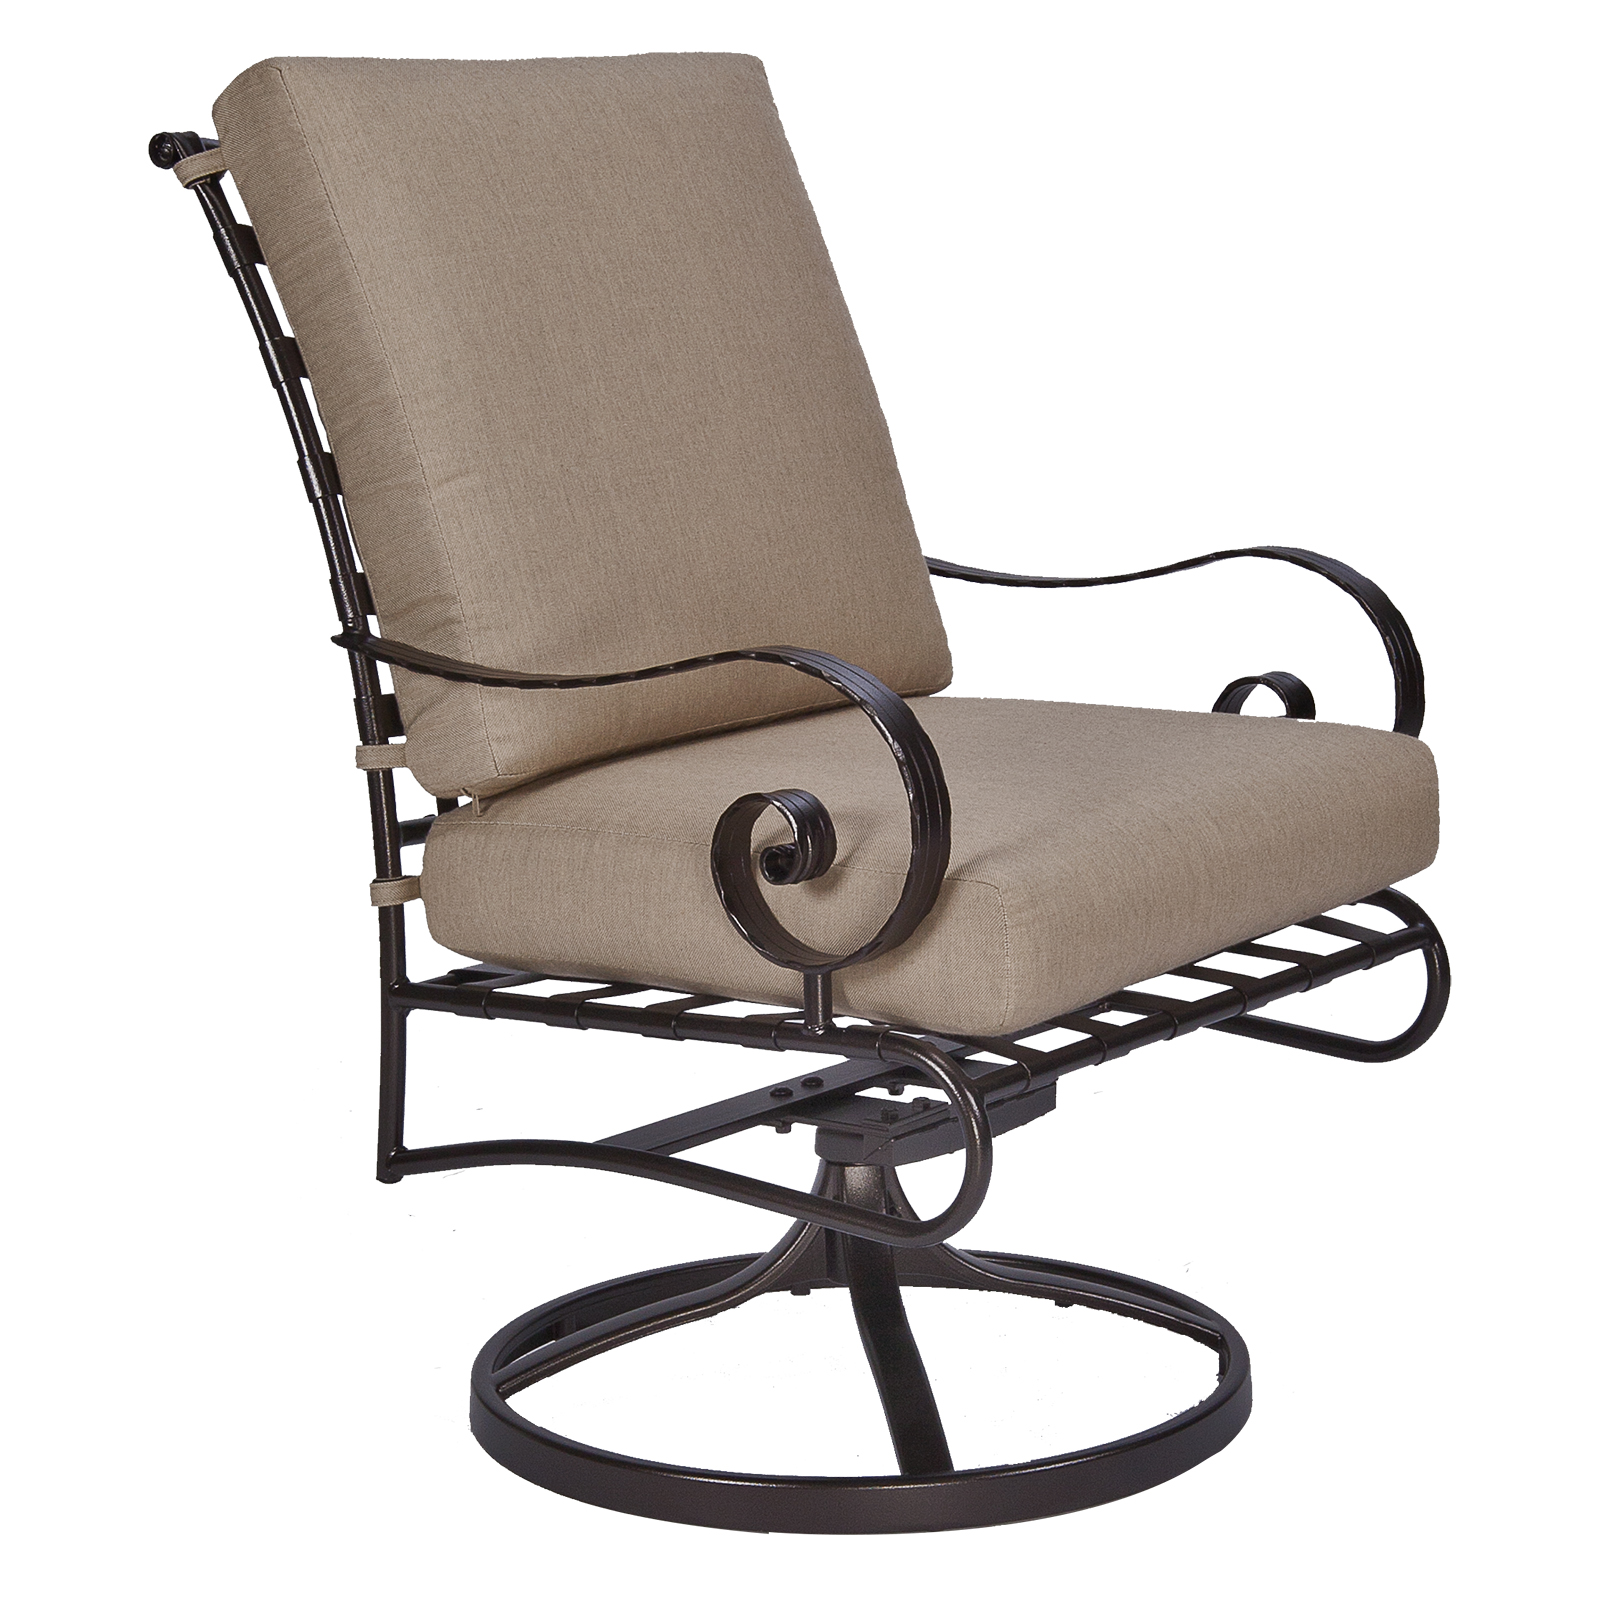 Club-Dining-Swivel-Rocker-Arm-Chair-942-SRW_Catalog_GR35_1600-Classico-W-OW-Lee